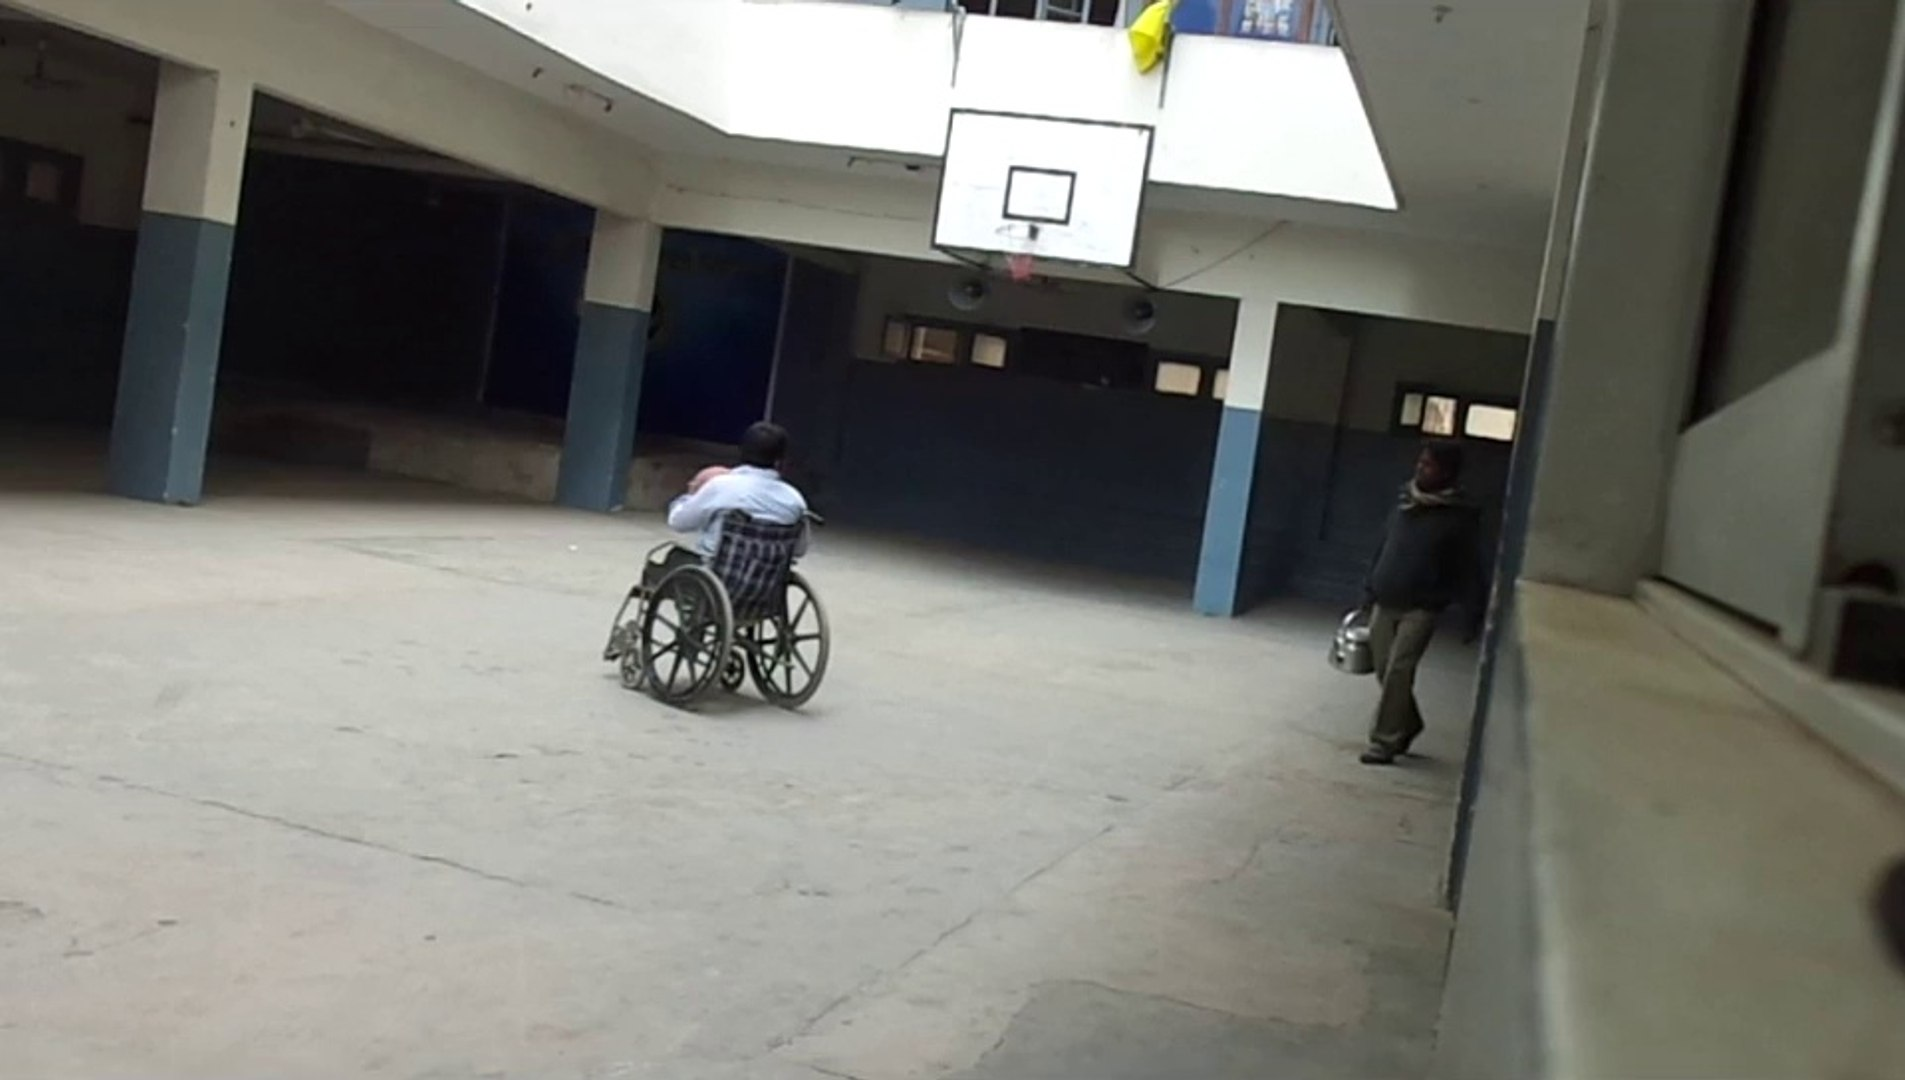 Double Amputee David: Basketball is part of my life